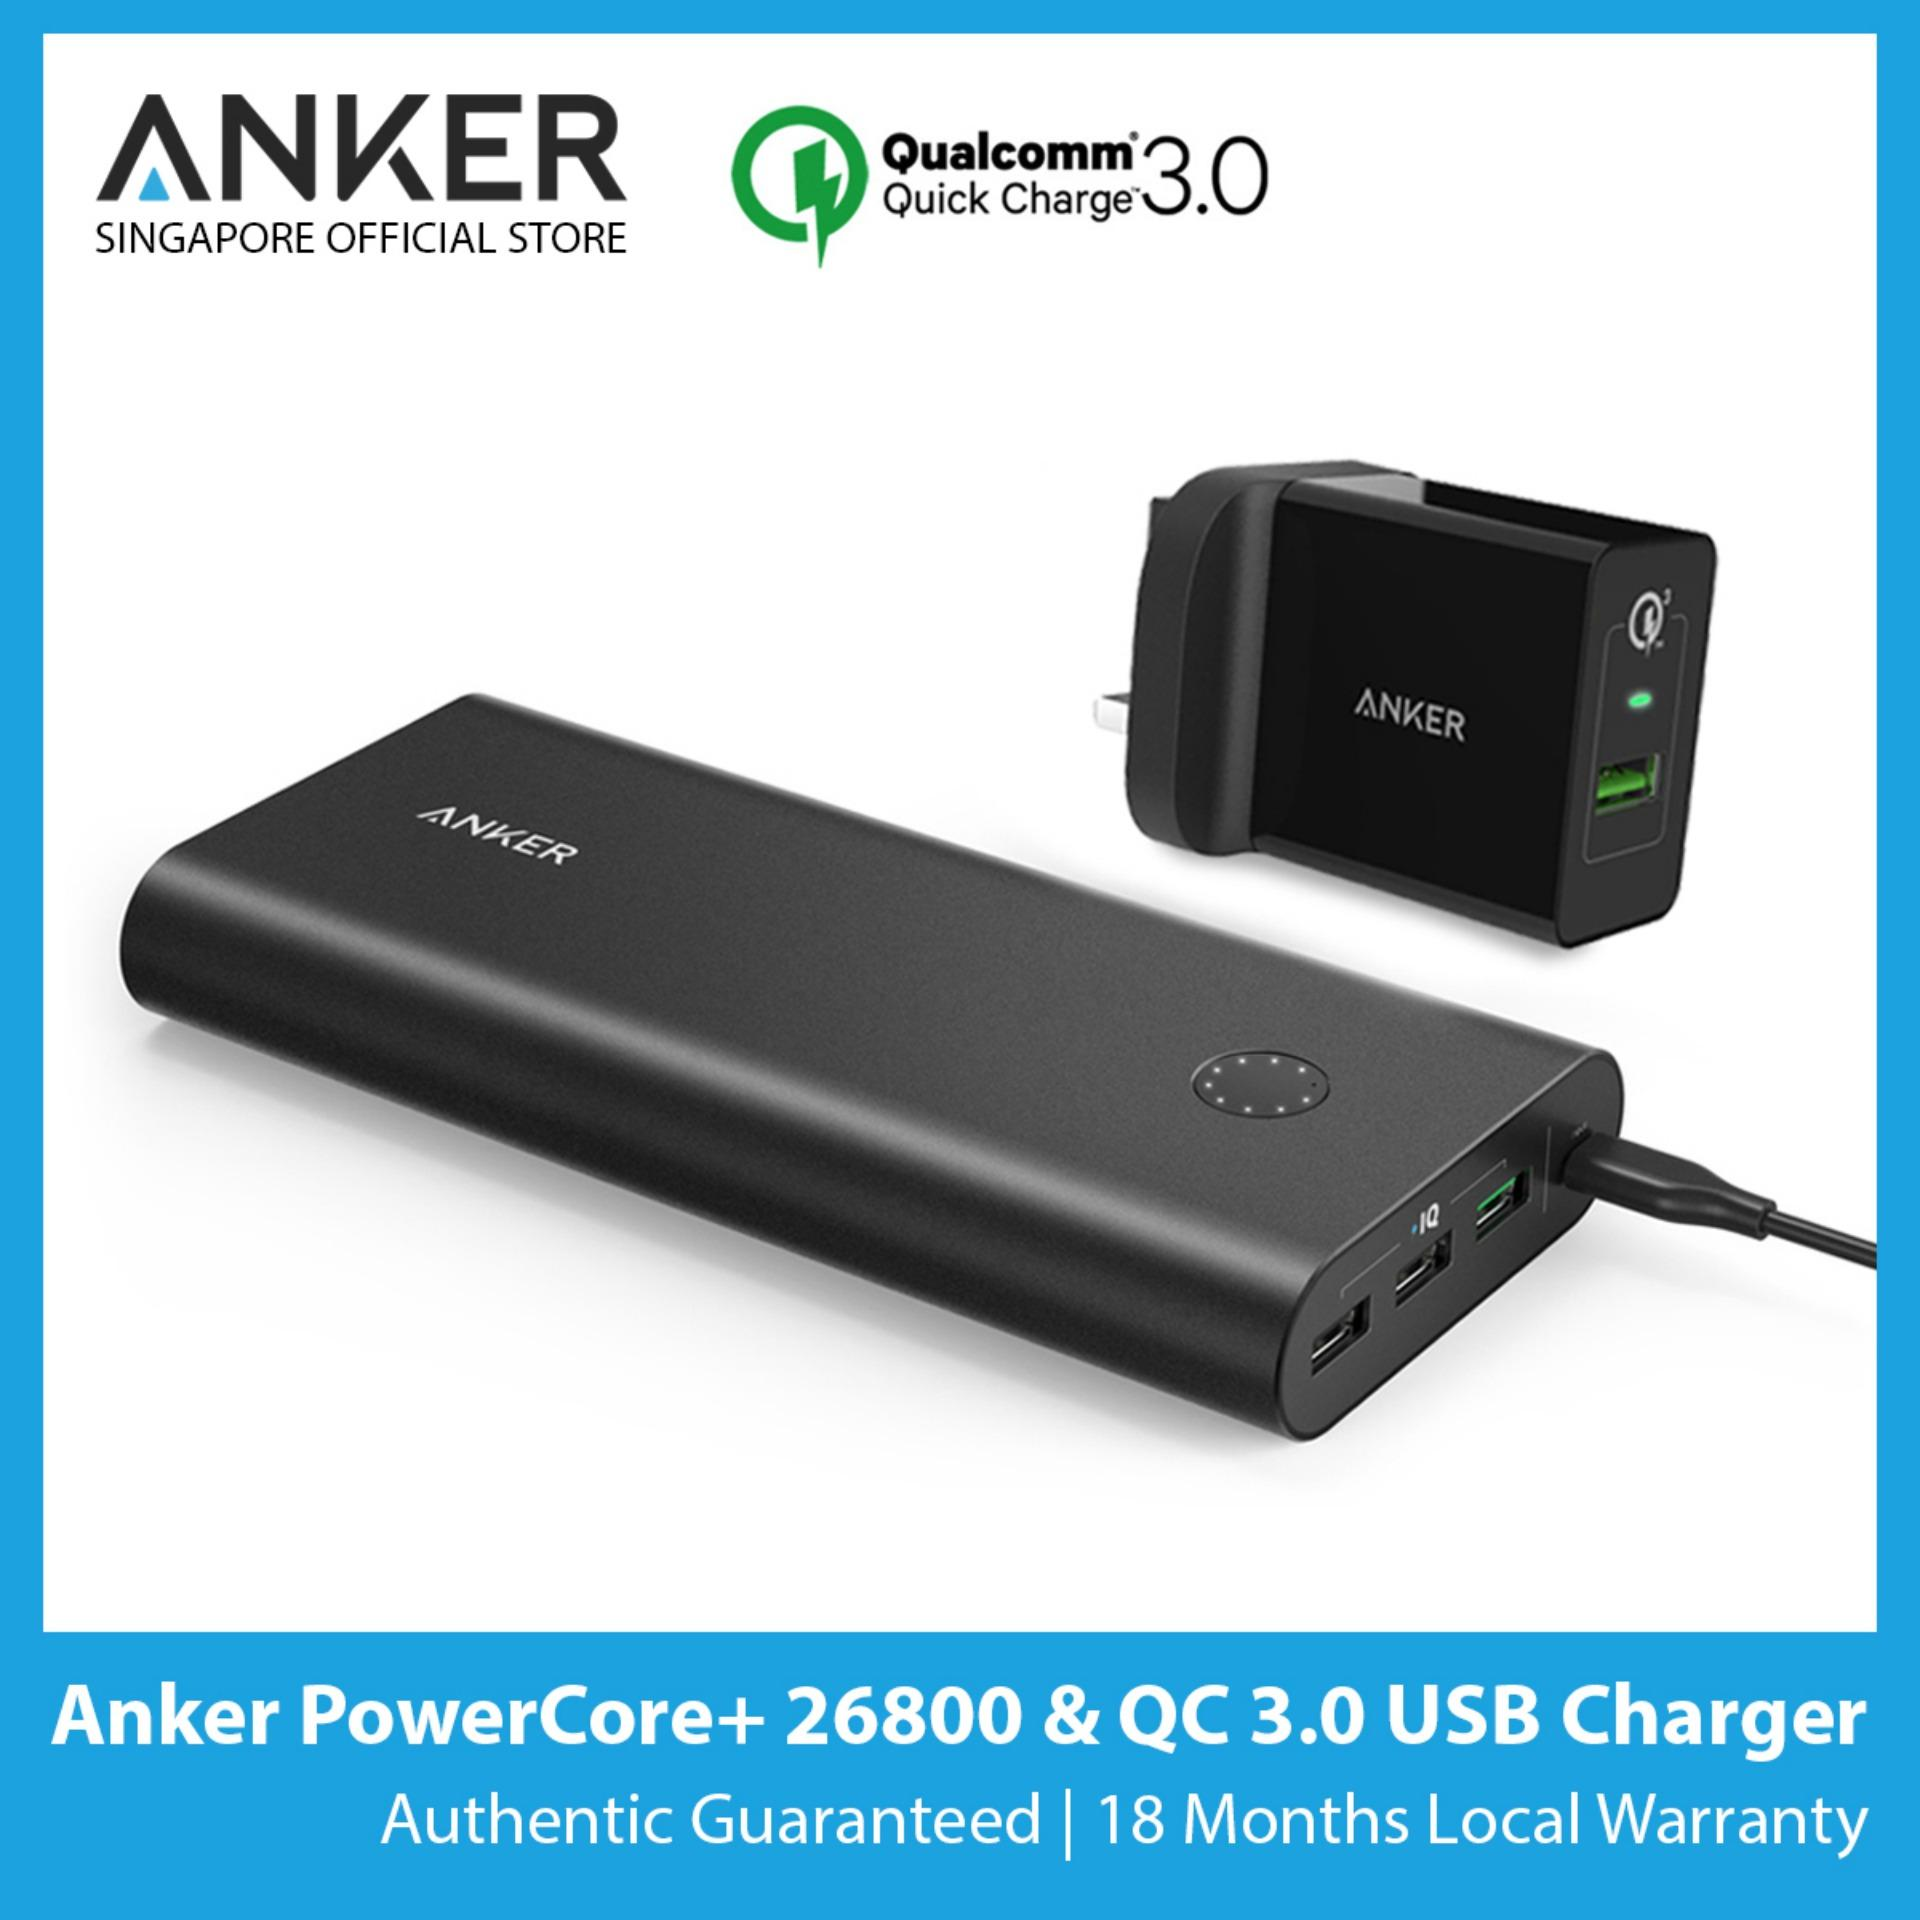 Anker PowerCore+ 26800mAh & Quick Charge 3.0 Charger (SG Plug)